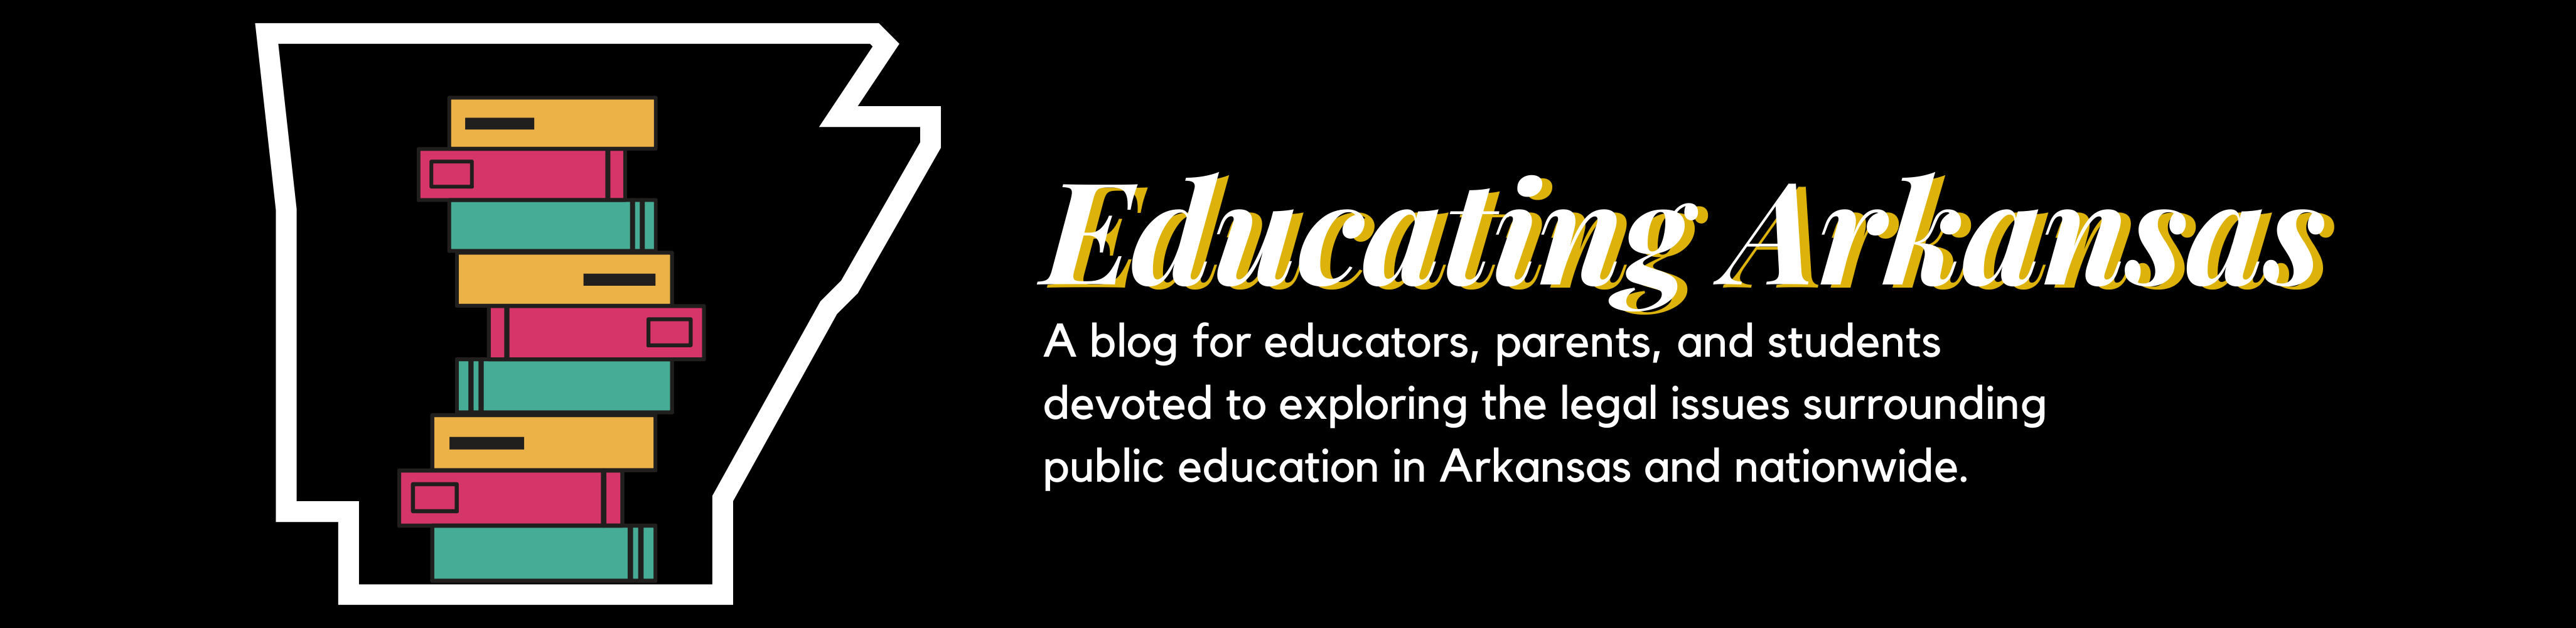 Educating Arkansas